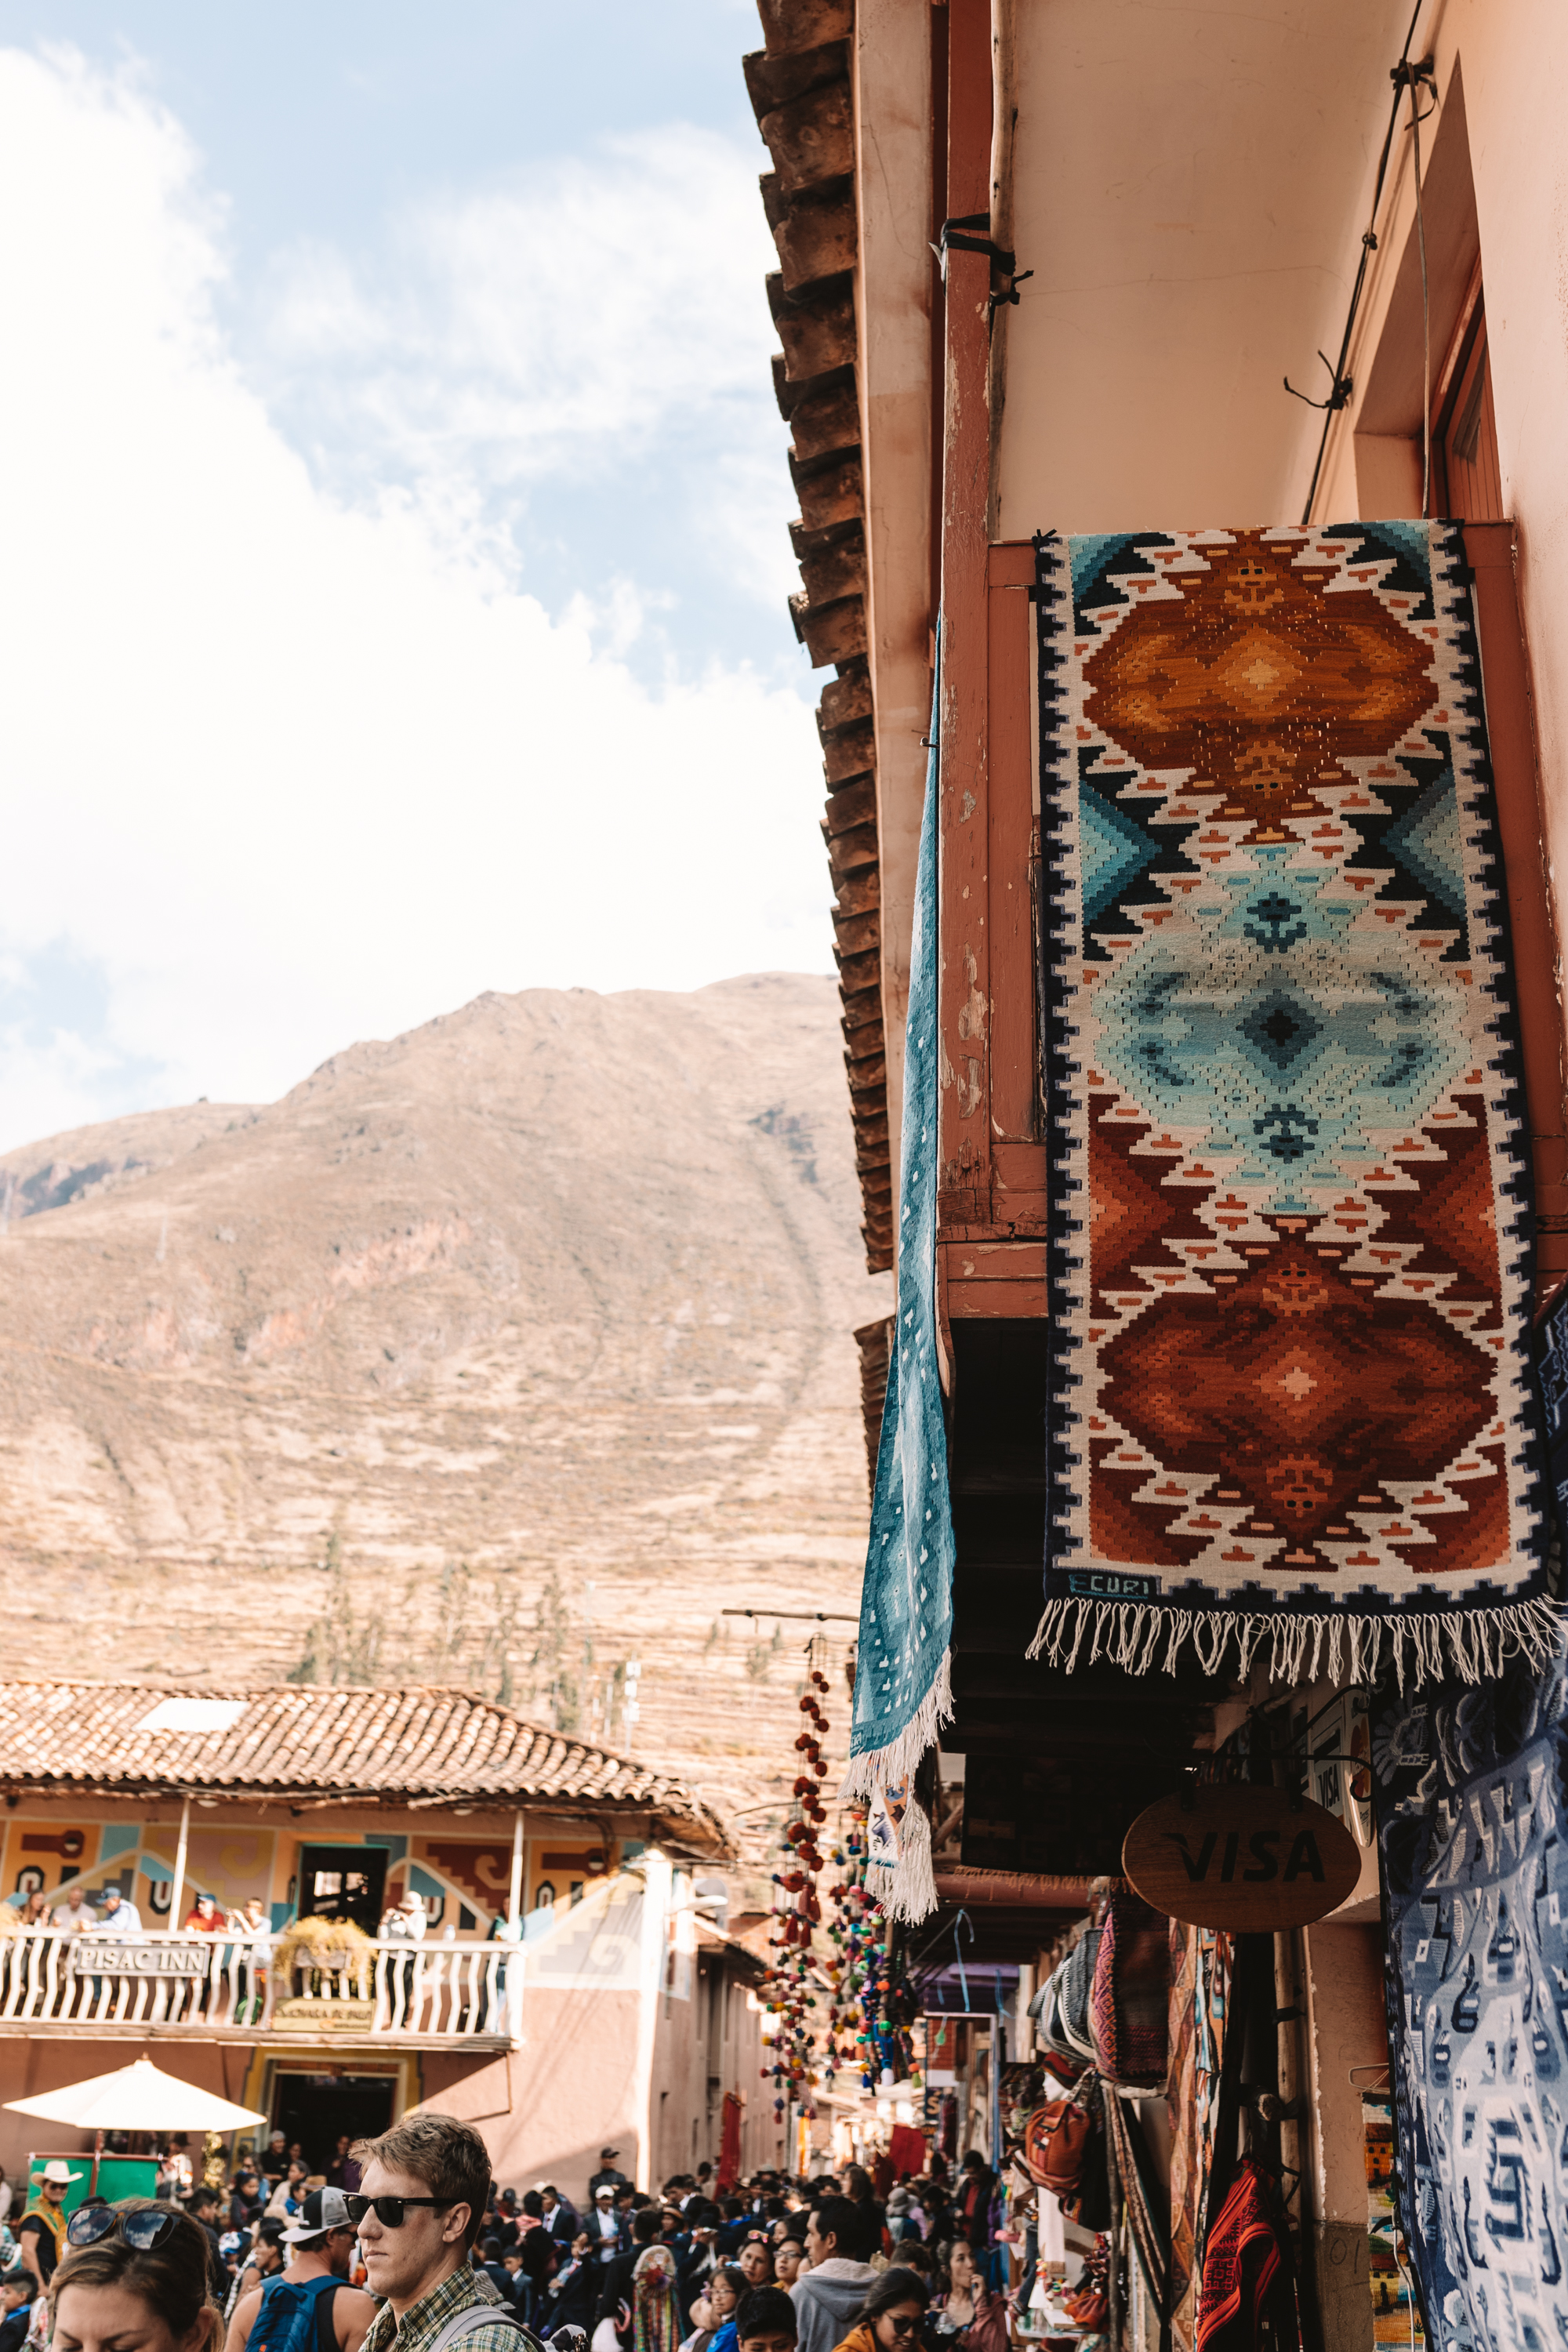 the Pisac Market in Peru #travel #southamerica #peru